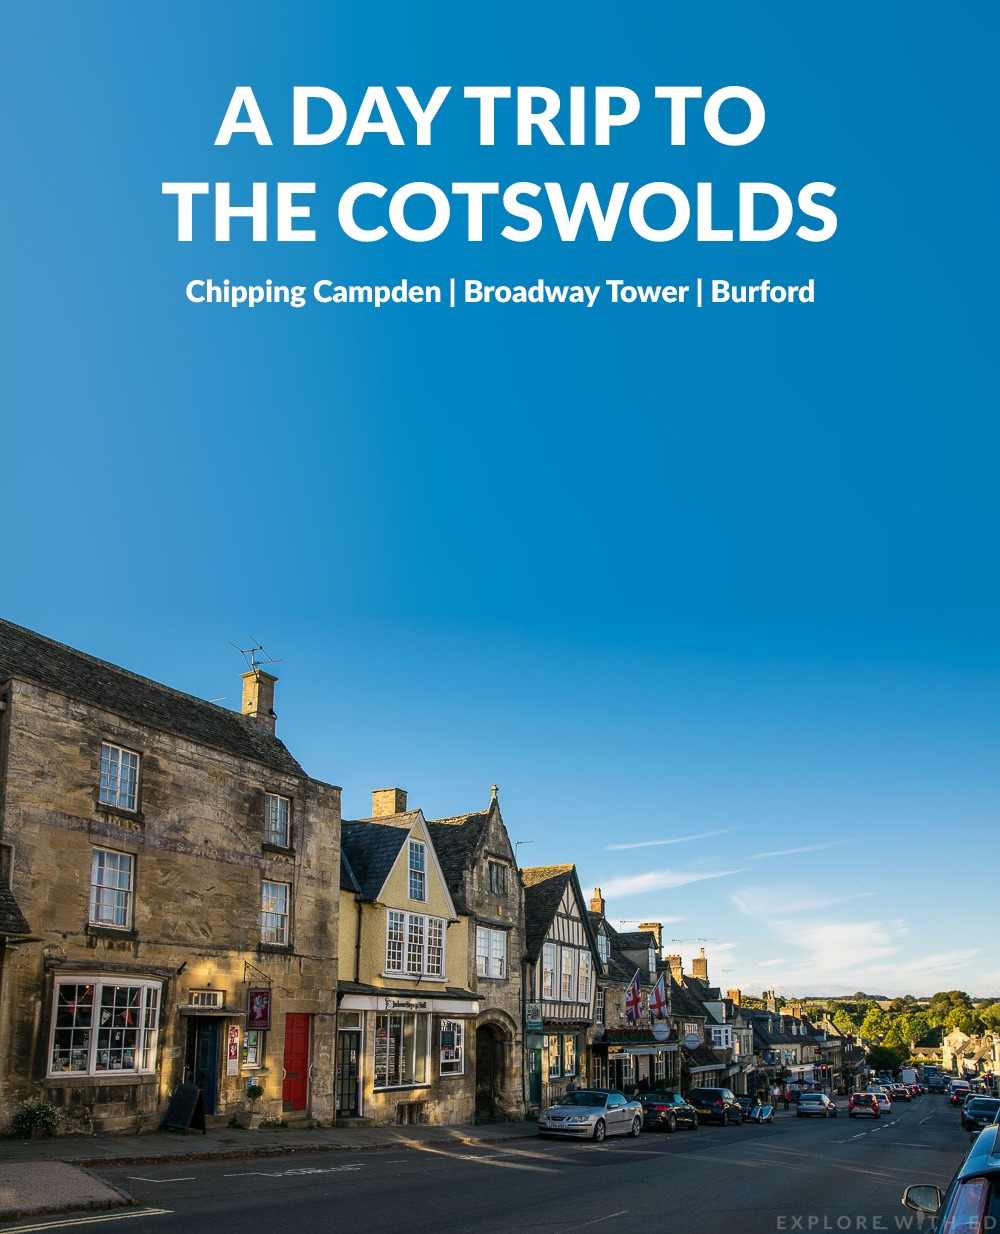 Title image featuring Burford High Street